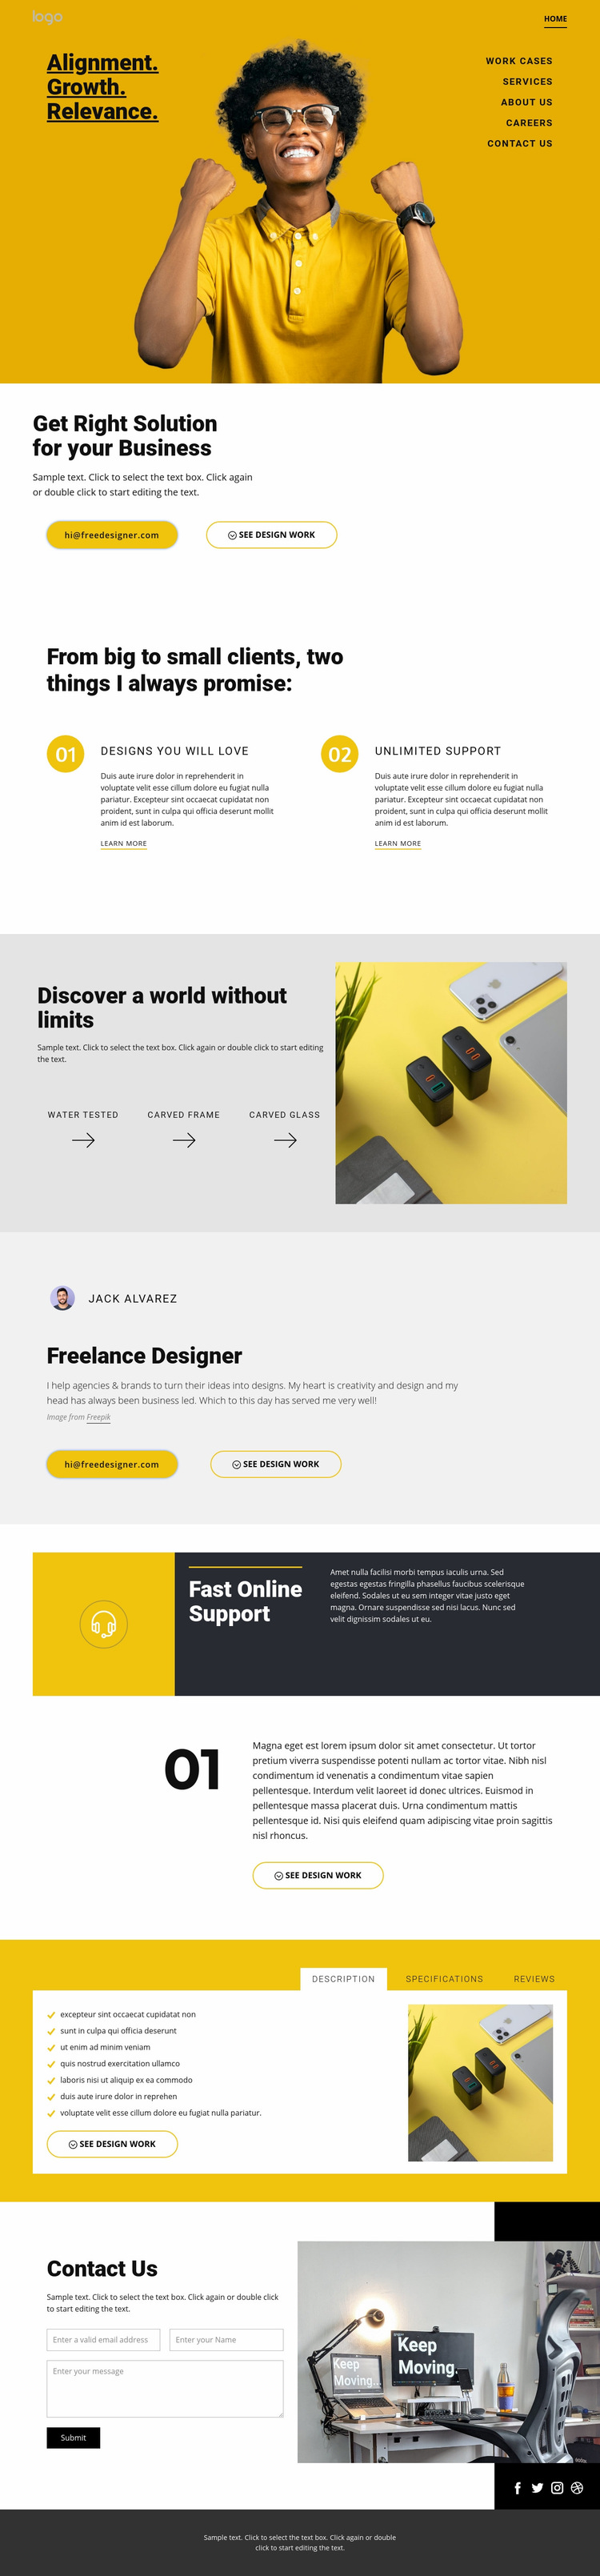 Quality is our goal Web Page Design